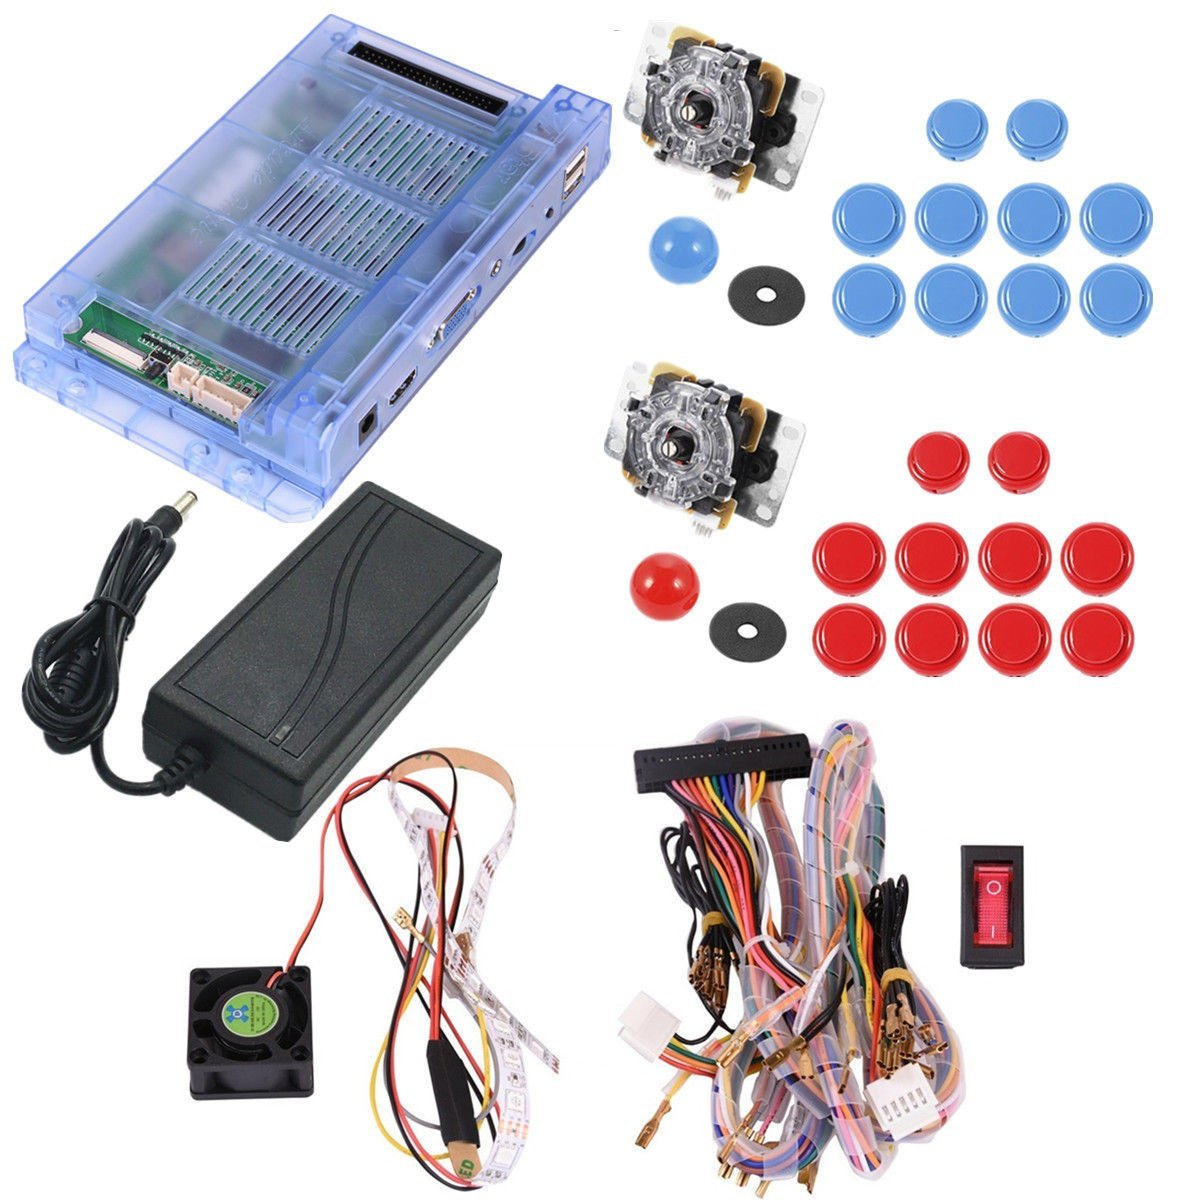 Freelance Shop Electronics 1299 in 1 Double Joystick Dual Player Push Button Game Board for PandoraBox 5S G